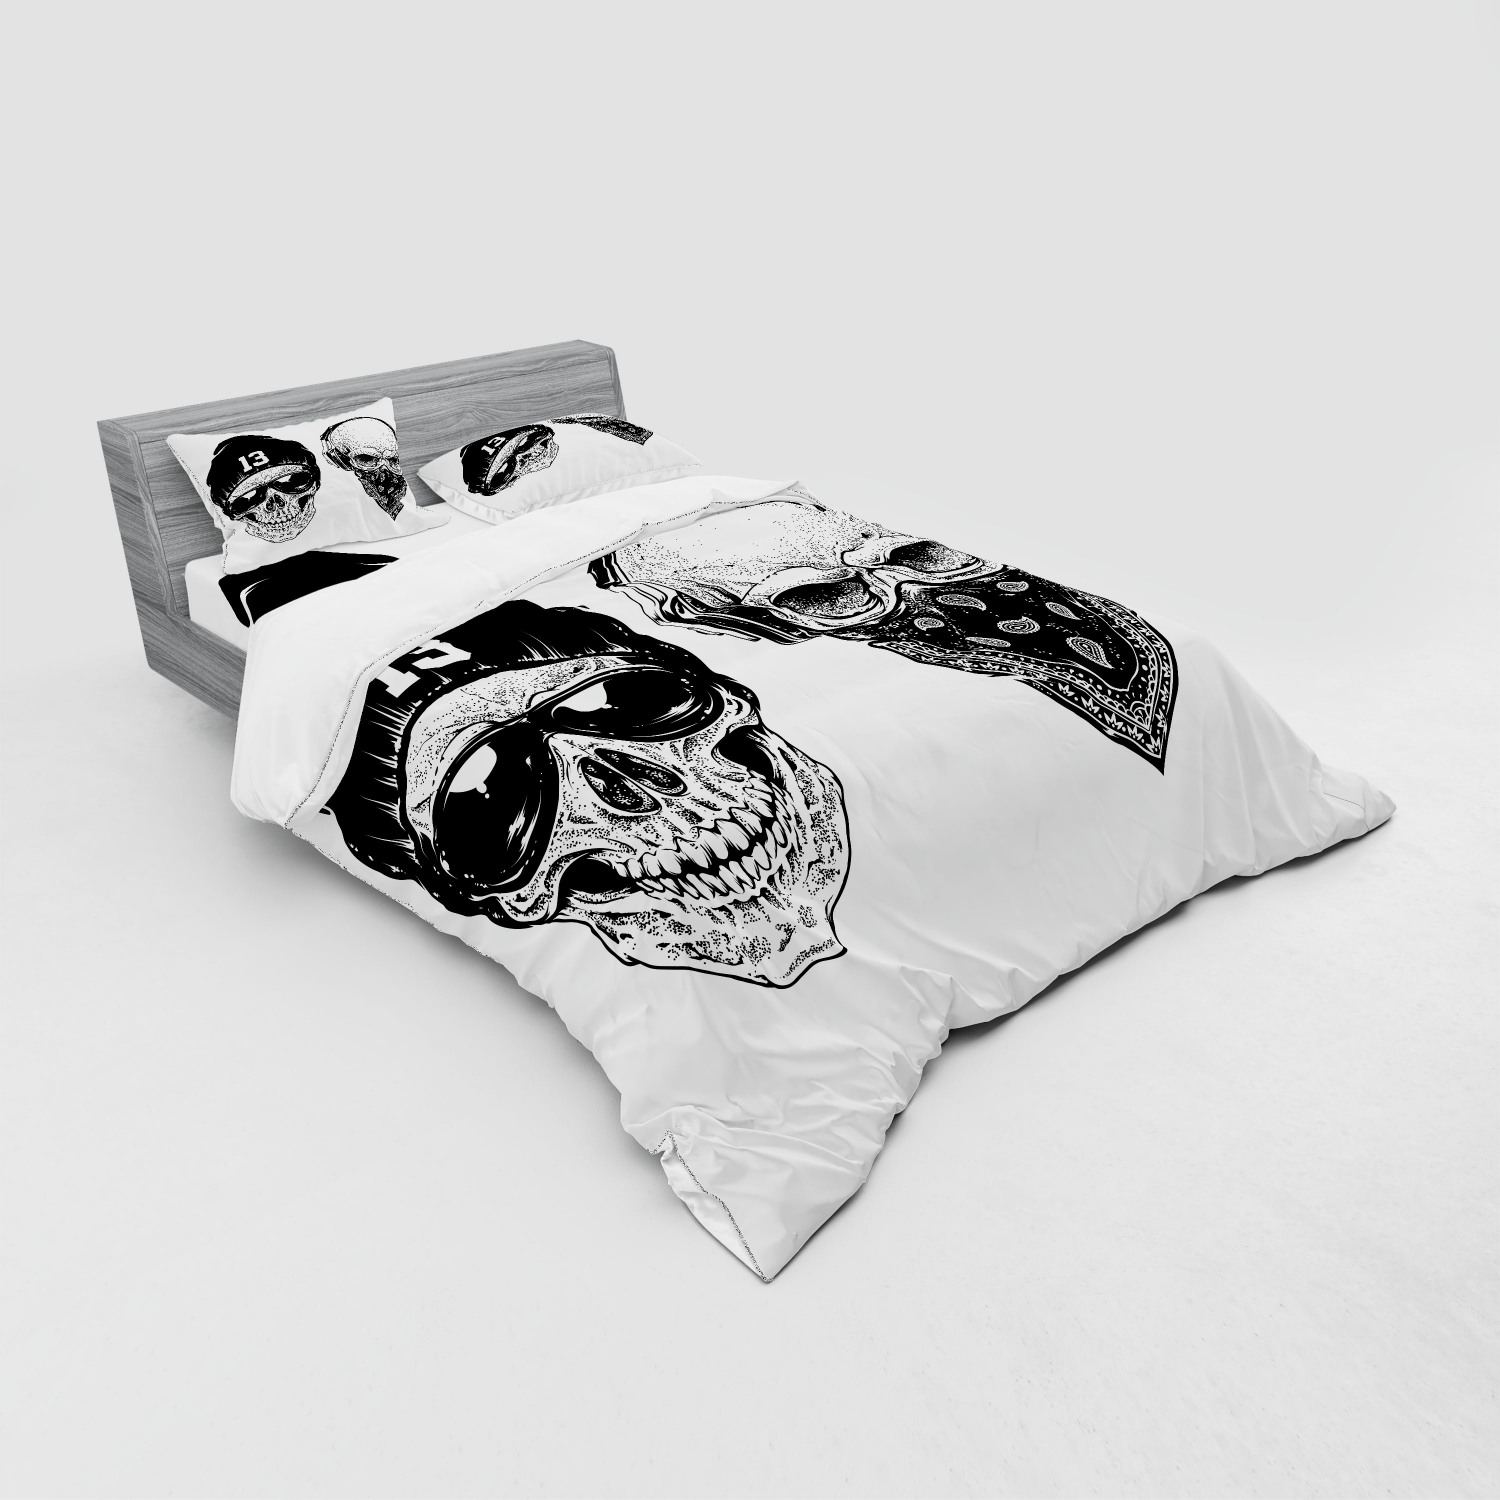 thumbnail 103 - Ambesonne Black White Art Bedding Set Duvet Cover Sham Fitted Sheet in 3 Sizes